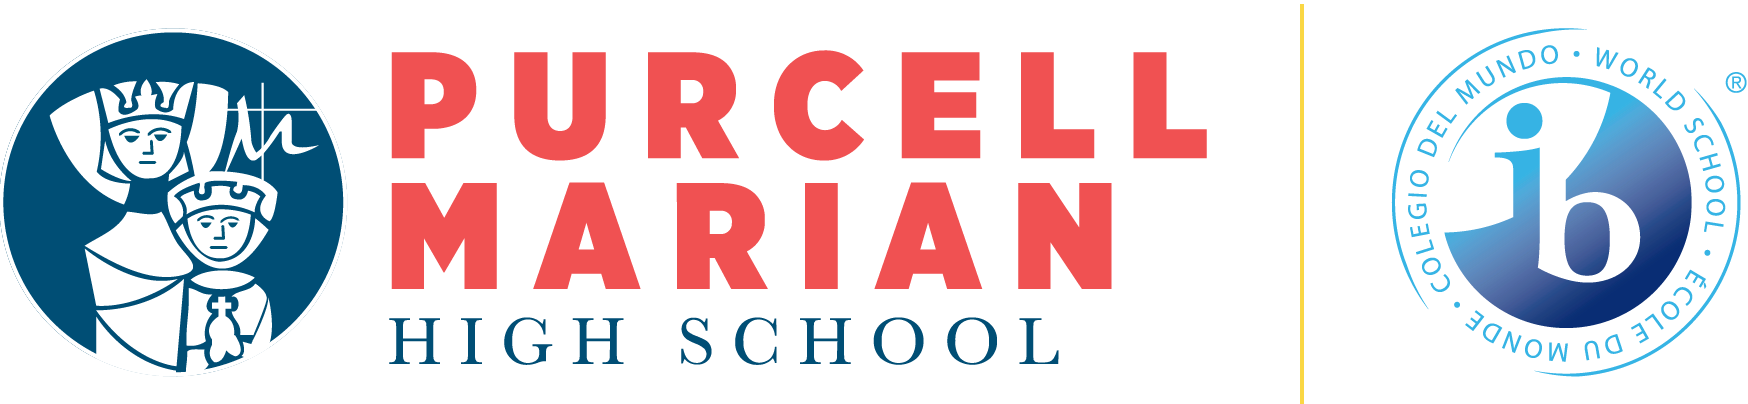 purcell marian ib world school